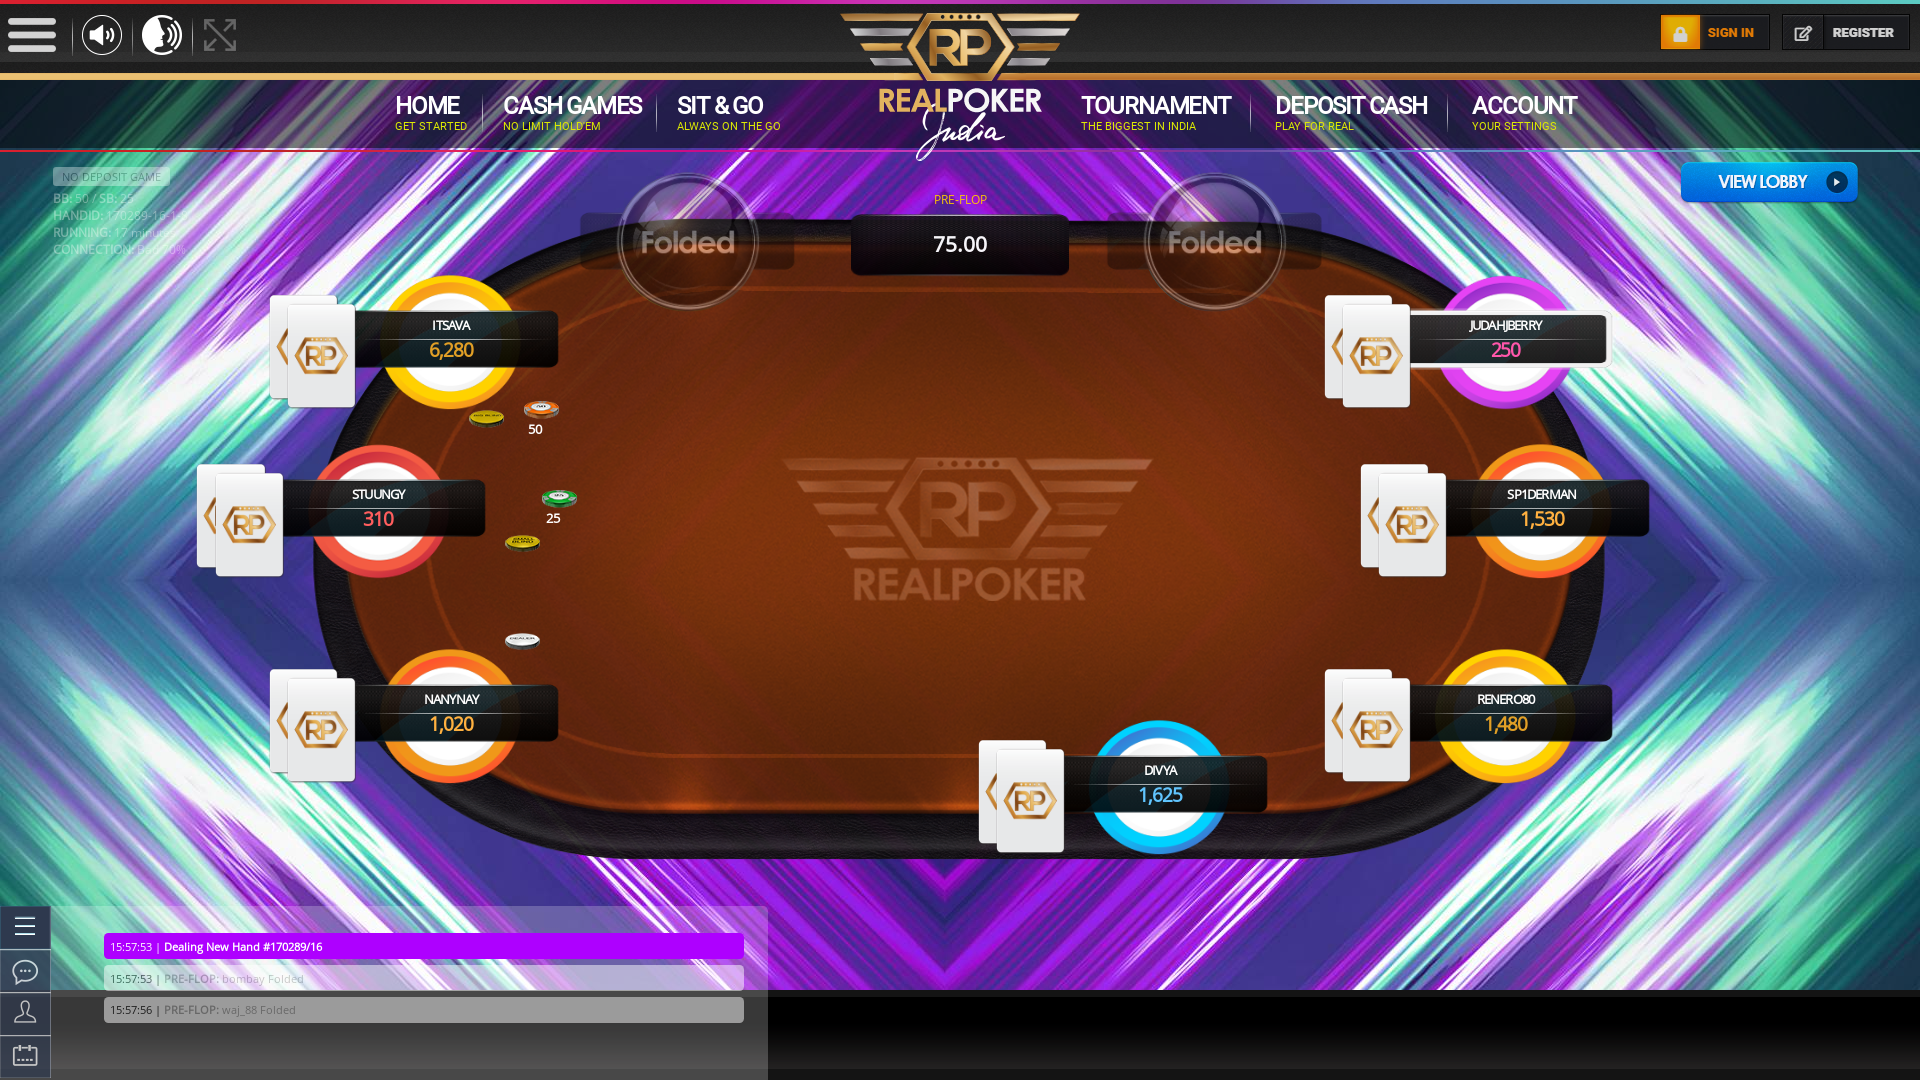 Boat Club Road, Pune Poker Website from 11th August